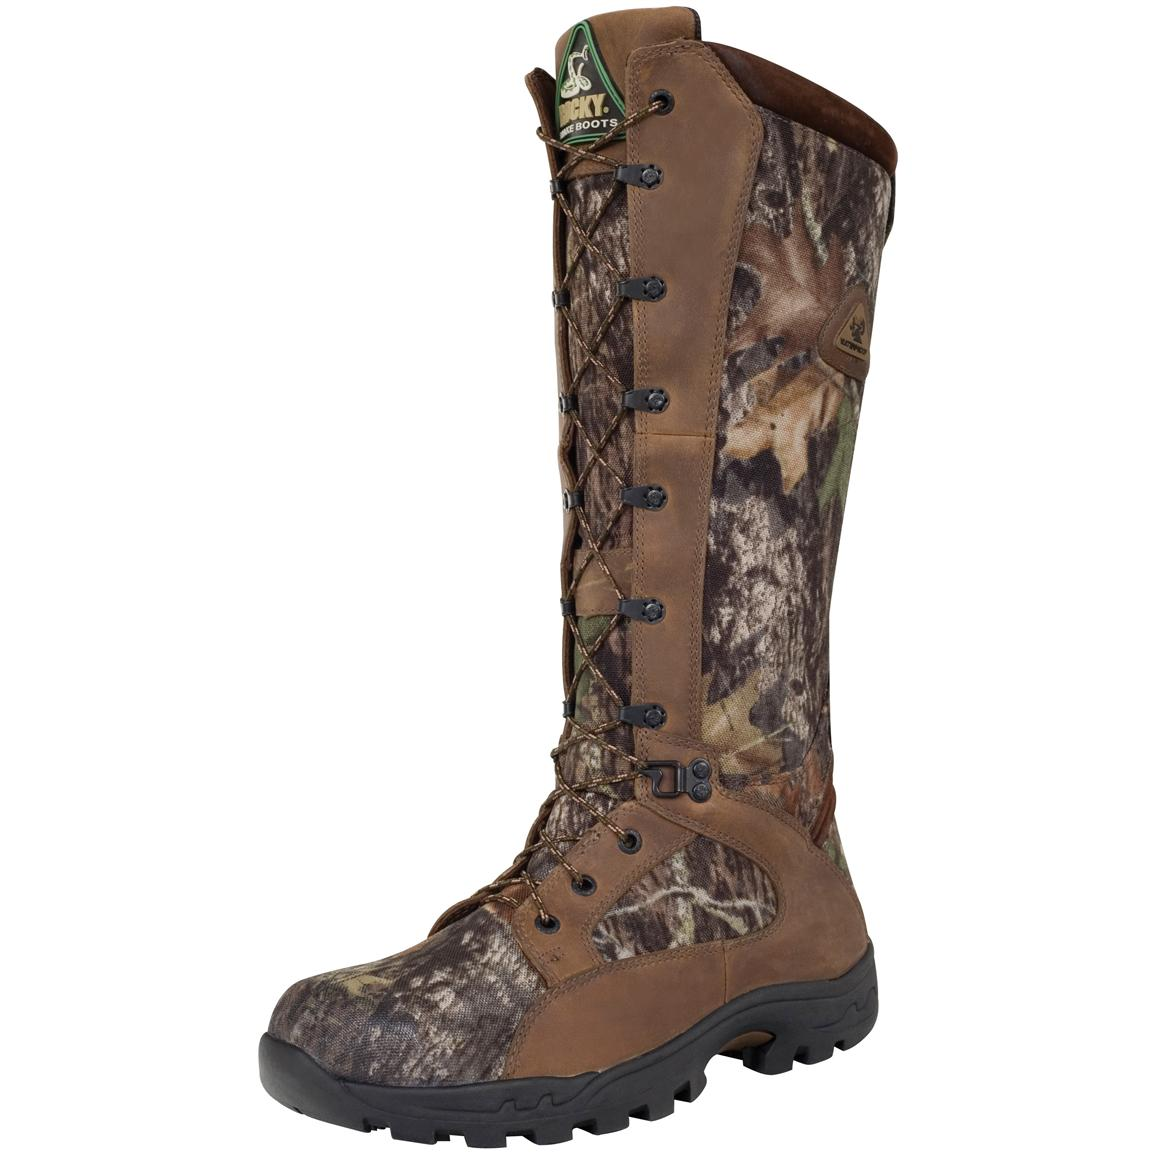 Men's Rocky® 16 inch ProLight SnakeProof Waterproof Boots, Mossy Oak Break-up®